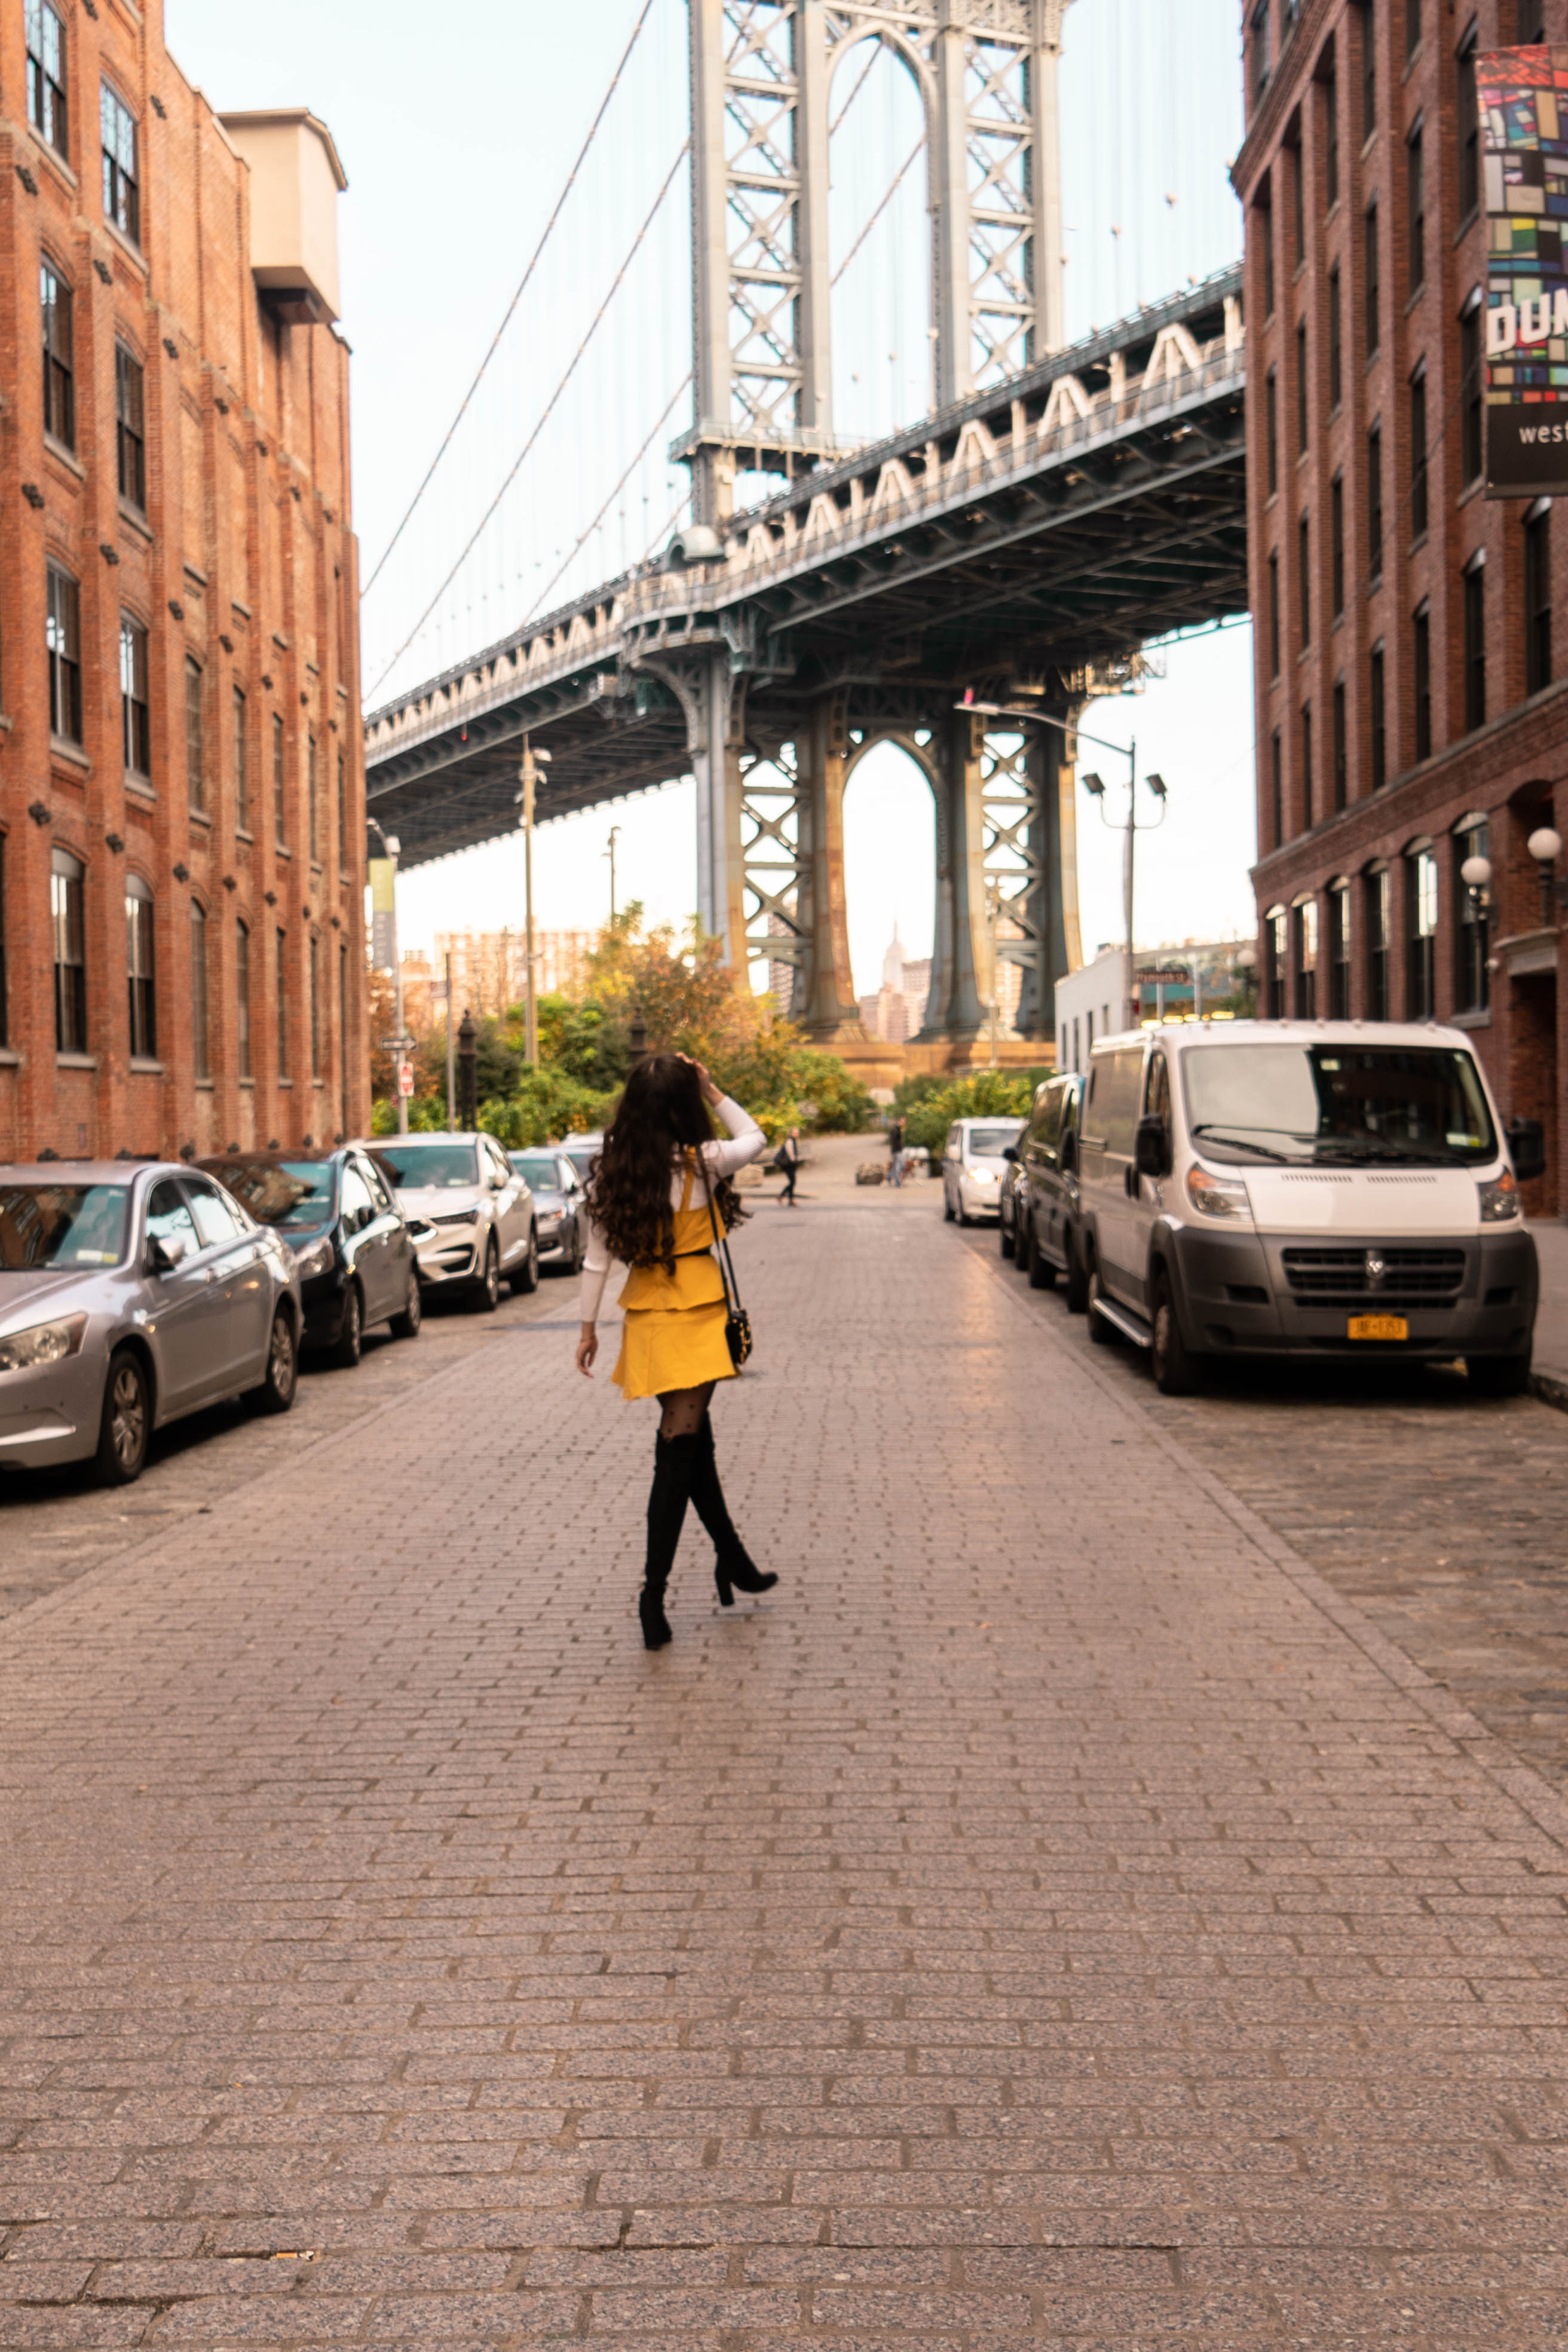 NYC style and fashion blogger in DUMBO Brooklyn thin skinny 1 inch gucci belt outfit with dress yellow ruffle stuart weitzman hiline black suede over the knee otk boots ootd inspo white turtleneck sweater prada astrology cahier black velvet handbag fall autumn cold weather feminine fashion lisi lerch emily pearl hoop earrings photo idea travel